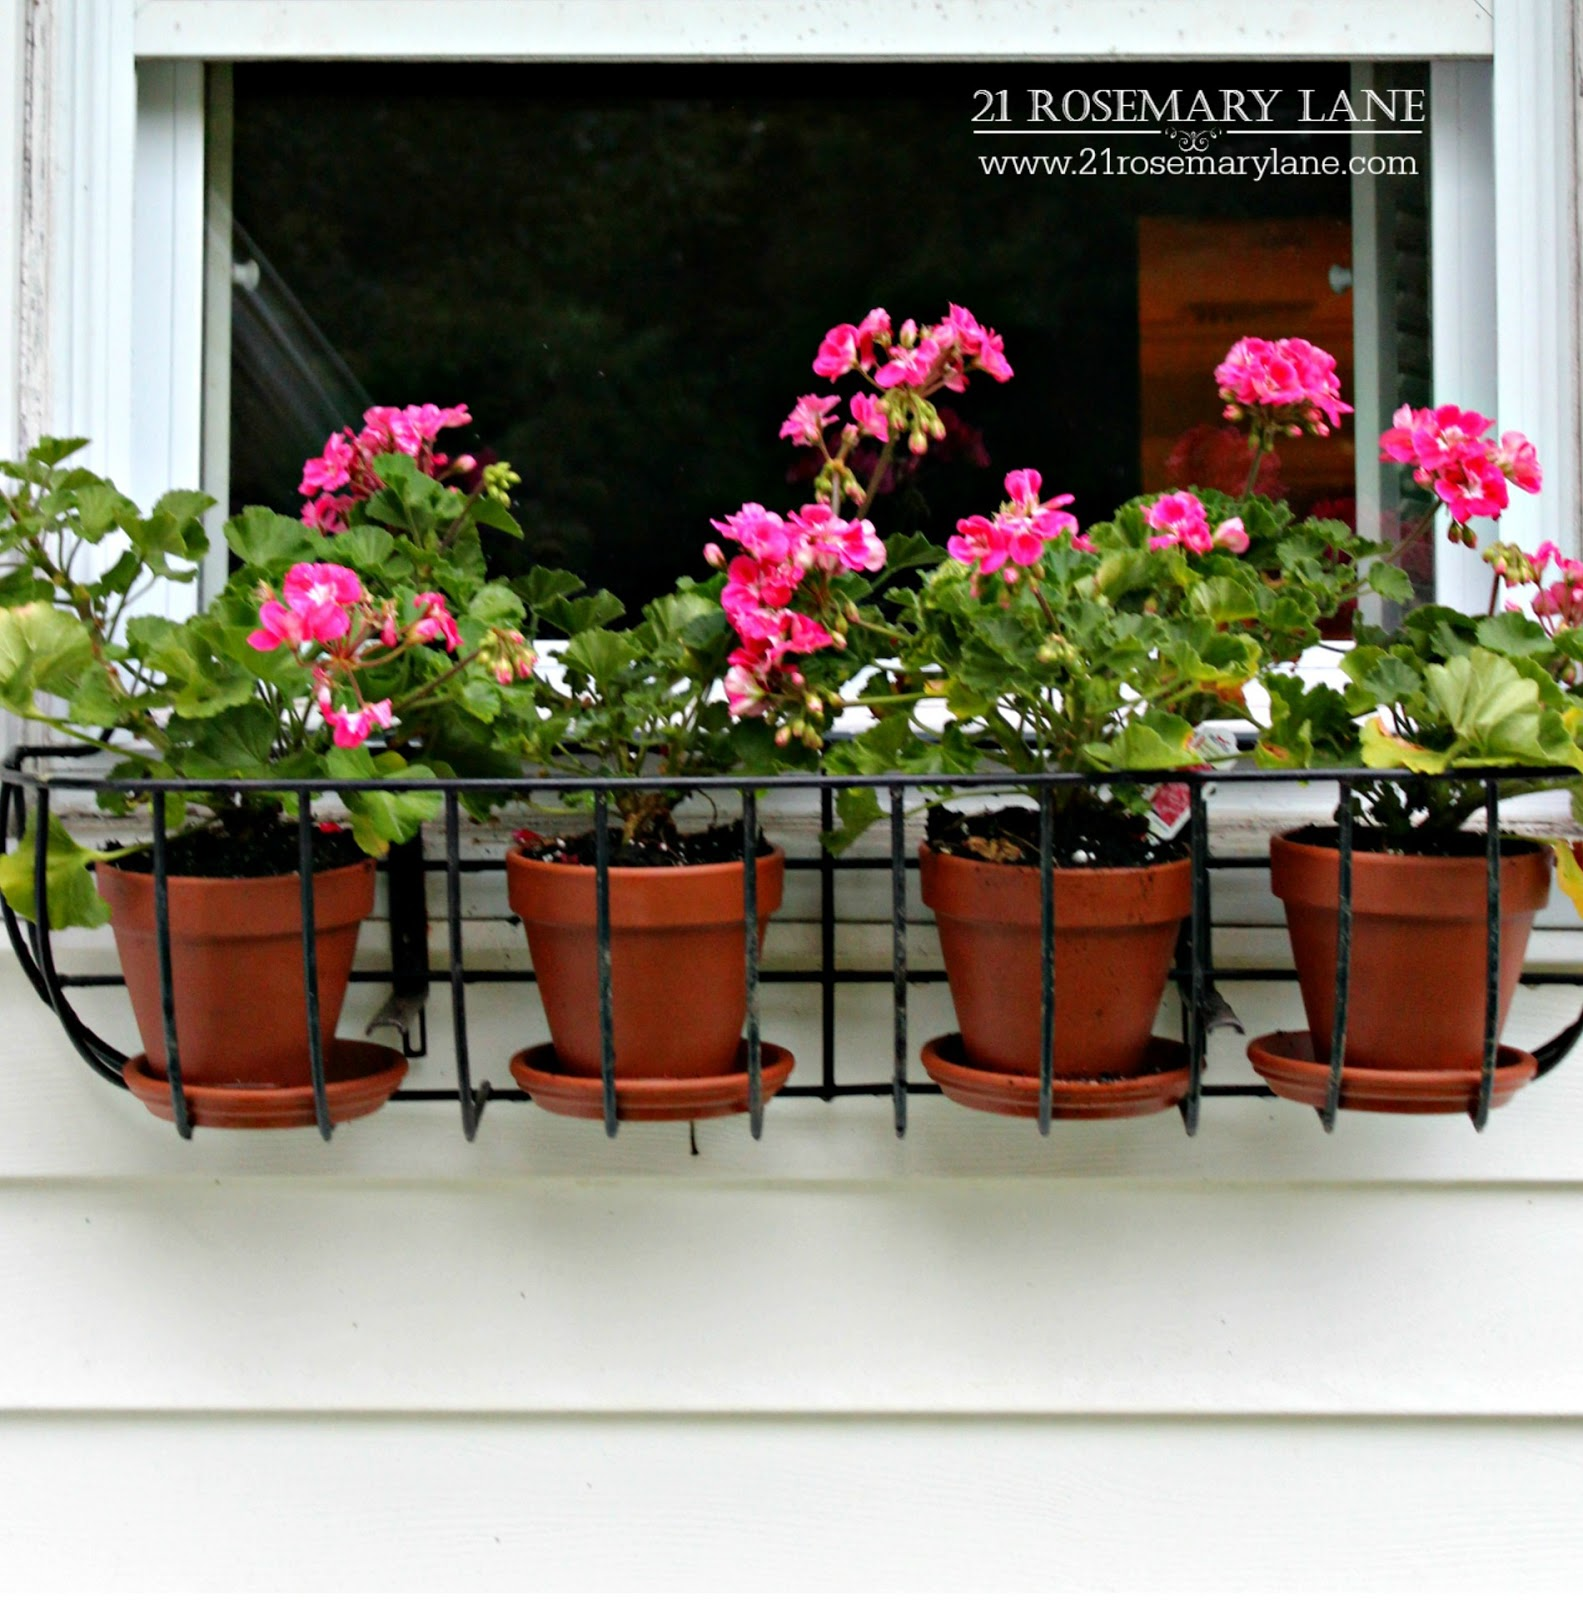 21 Rosemary Lane Using Clay Pots In Wire Planters As An Inexpensive